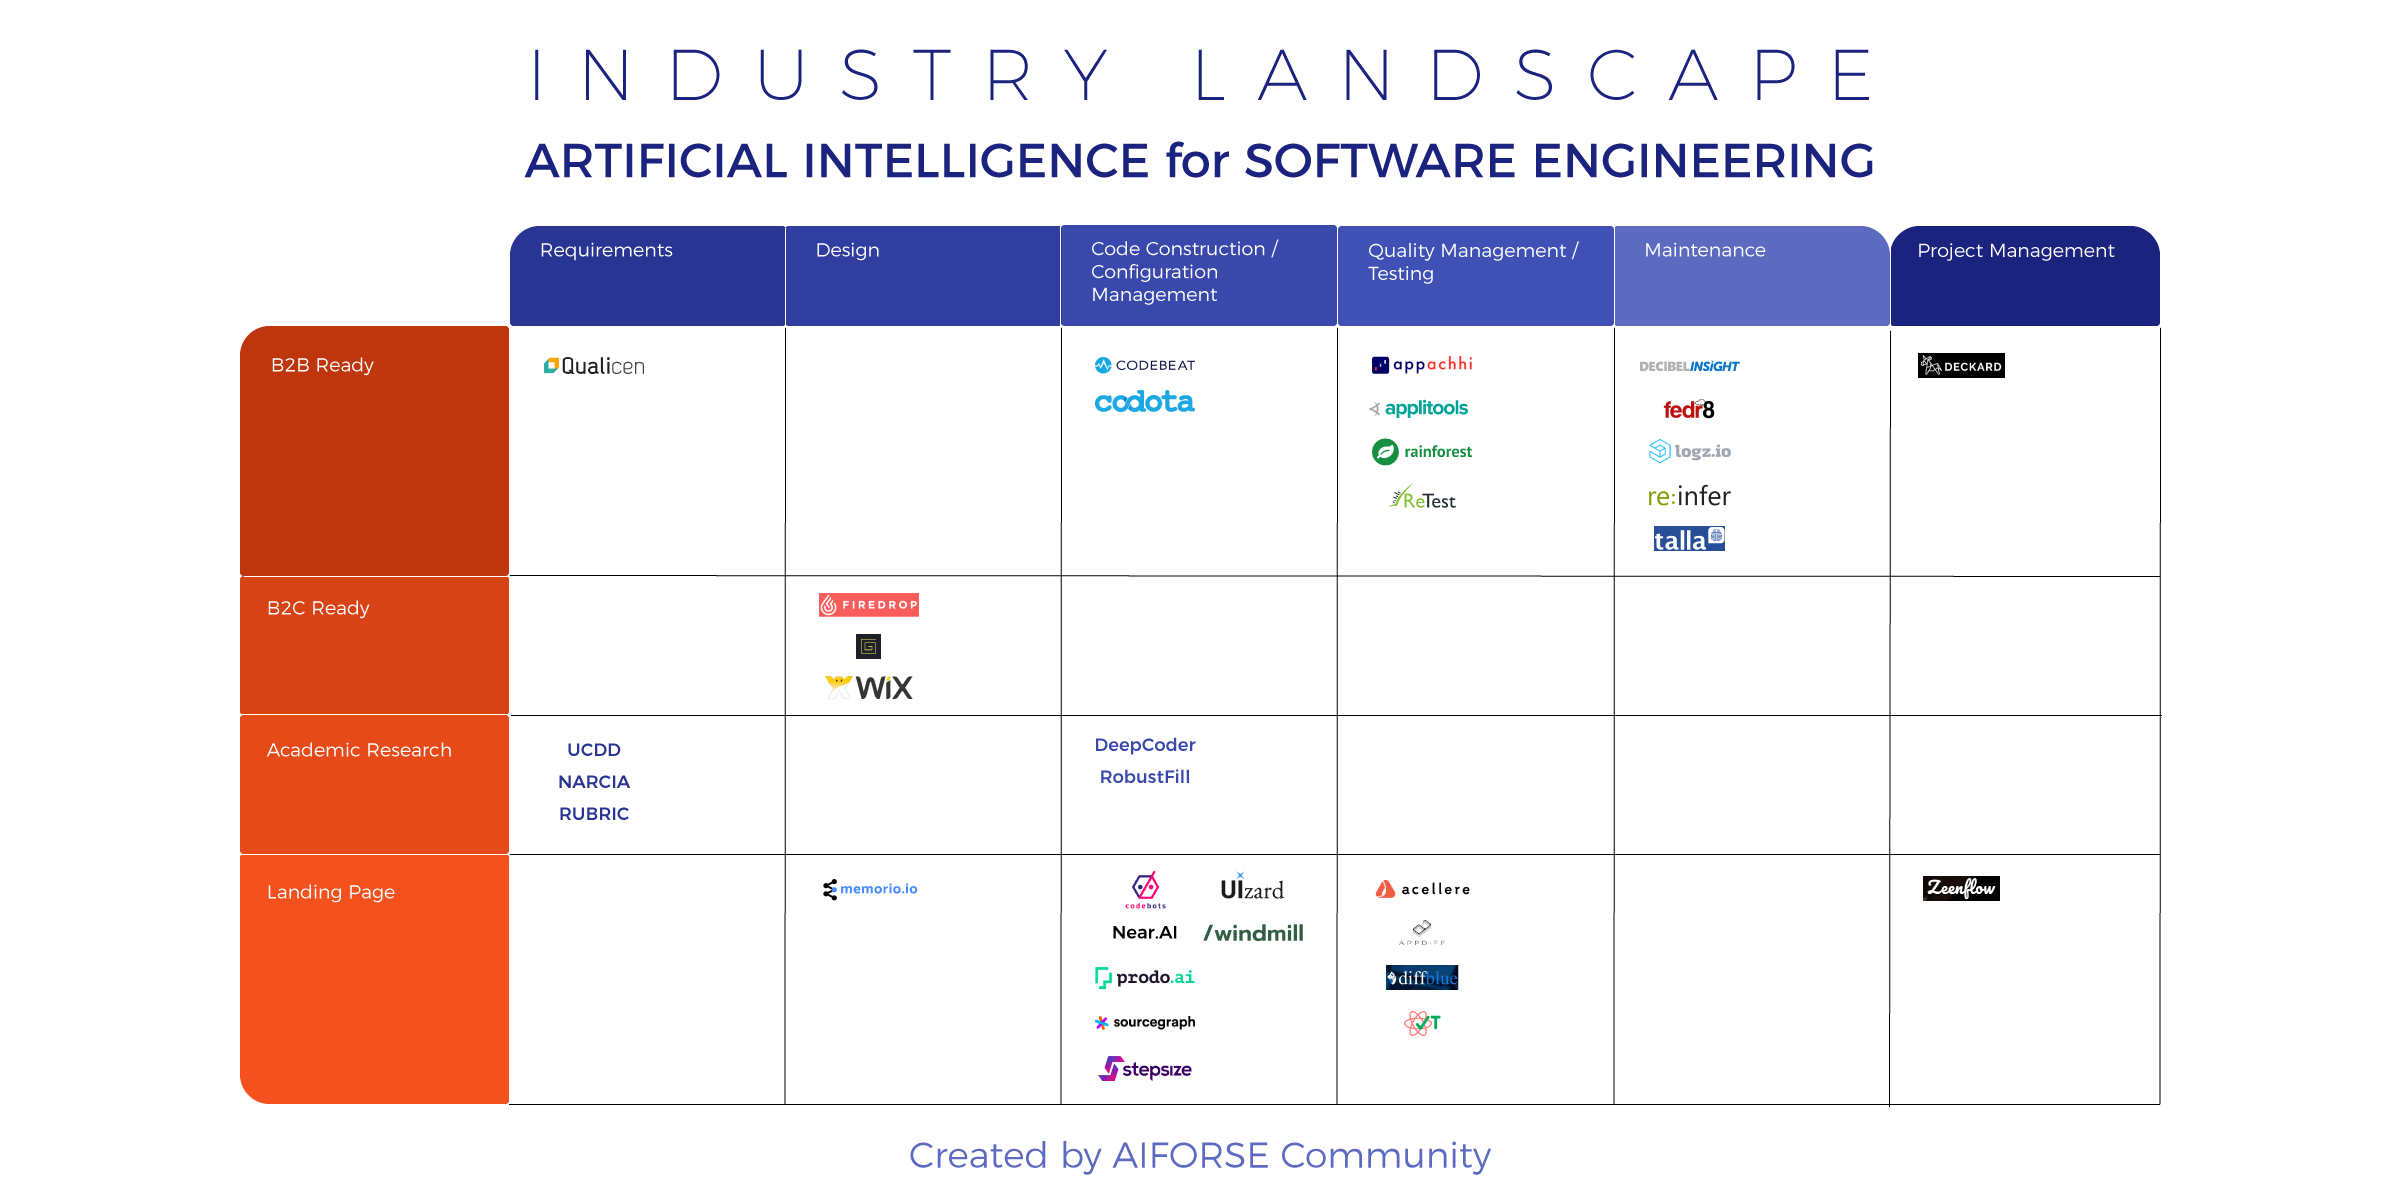 AI for SE Industry Landscape (03-Oct-2017)